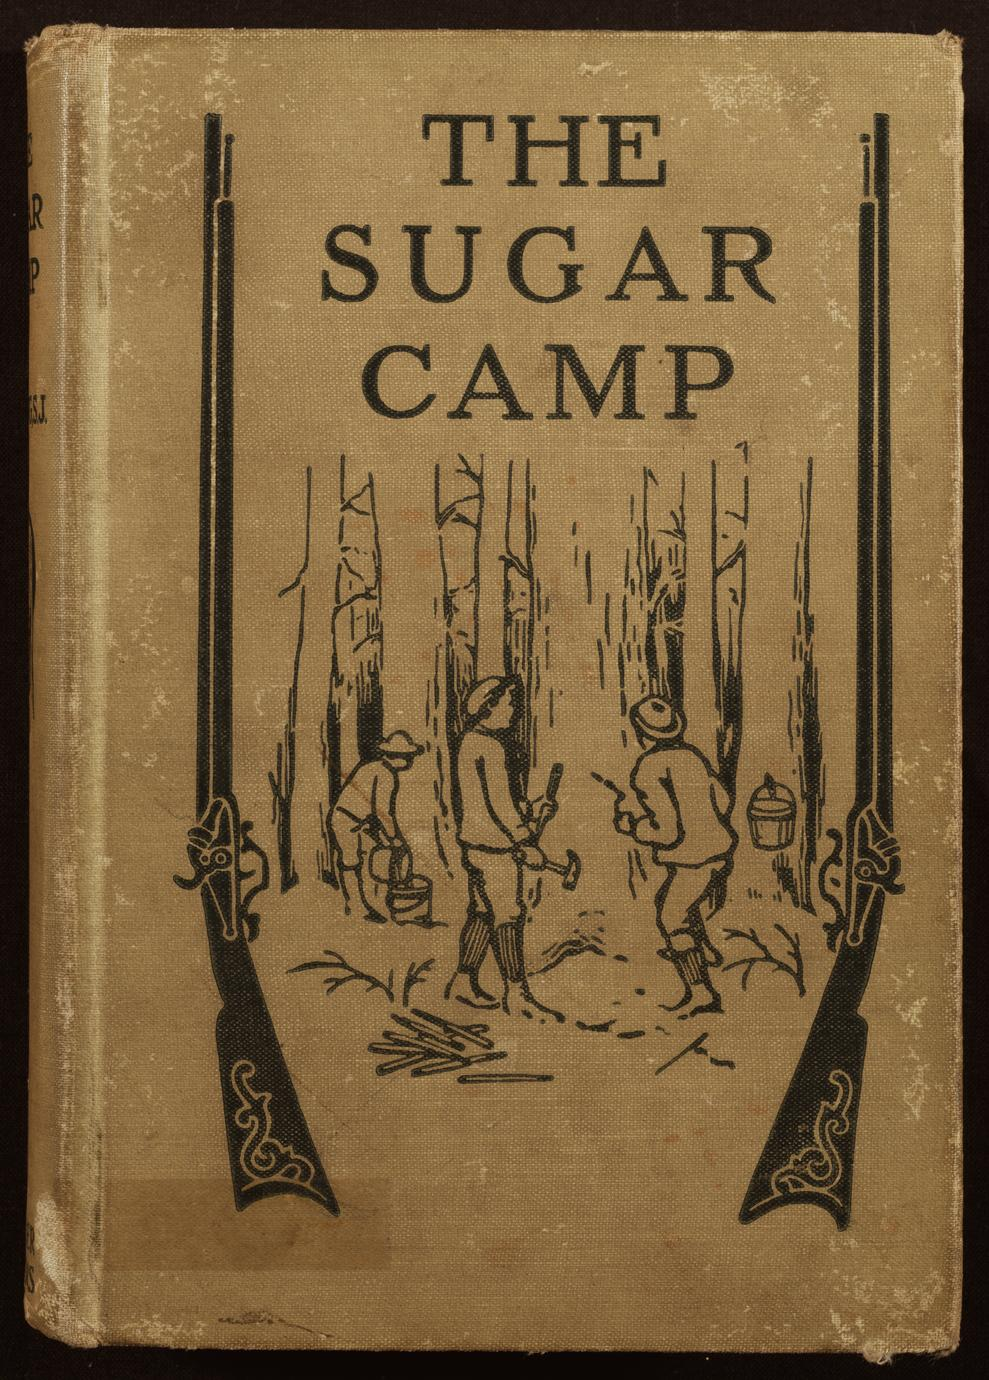 Sugar camp and after (1 of 3)